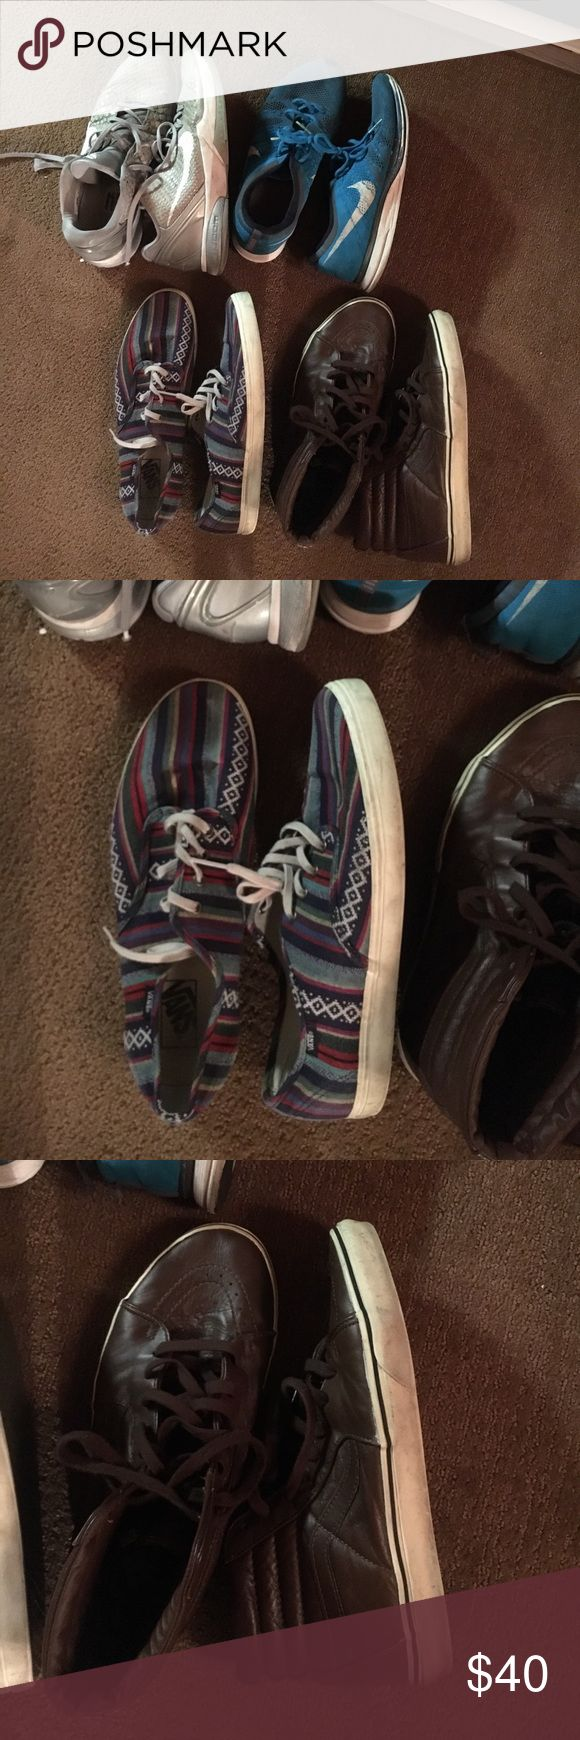 Men's shoe Bundle size 11 *MAKE OFFER* Men's shoe Bundle. (1) pair Nike Kobes. (1) pair Nike Flyknit trainer. (1) low top tribal vans. (1) pair high top brown vans. All size size 11 except kobes are 11.5. Nike Shoes Sneakers